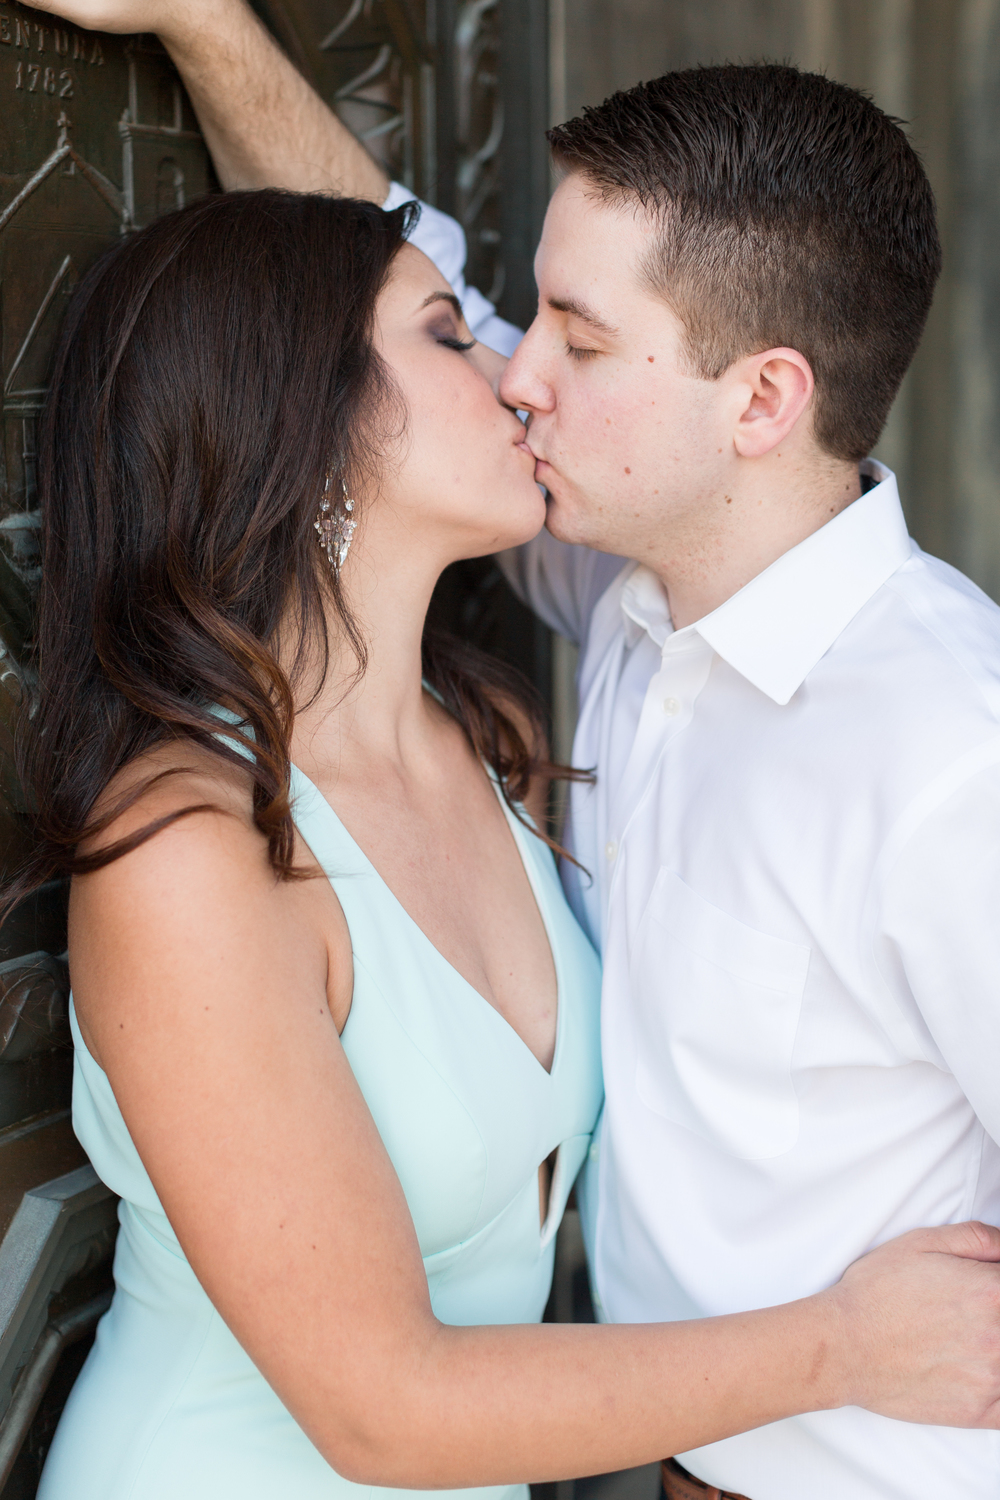 CourtneyPaigePhotography_EngagementPhotography_Soto-36.jpg